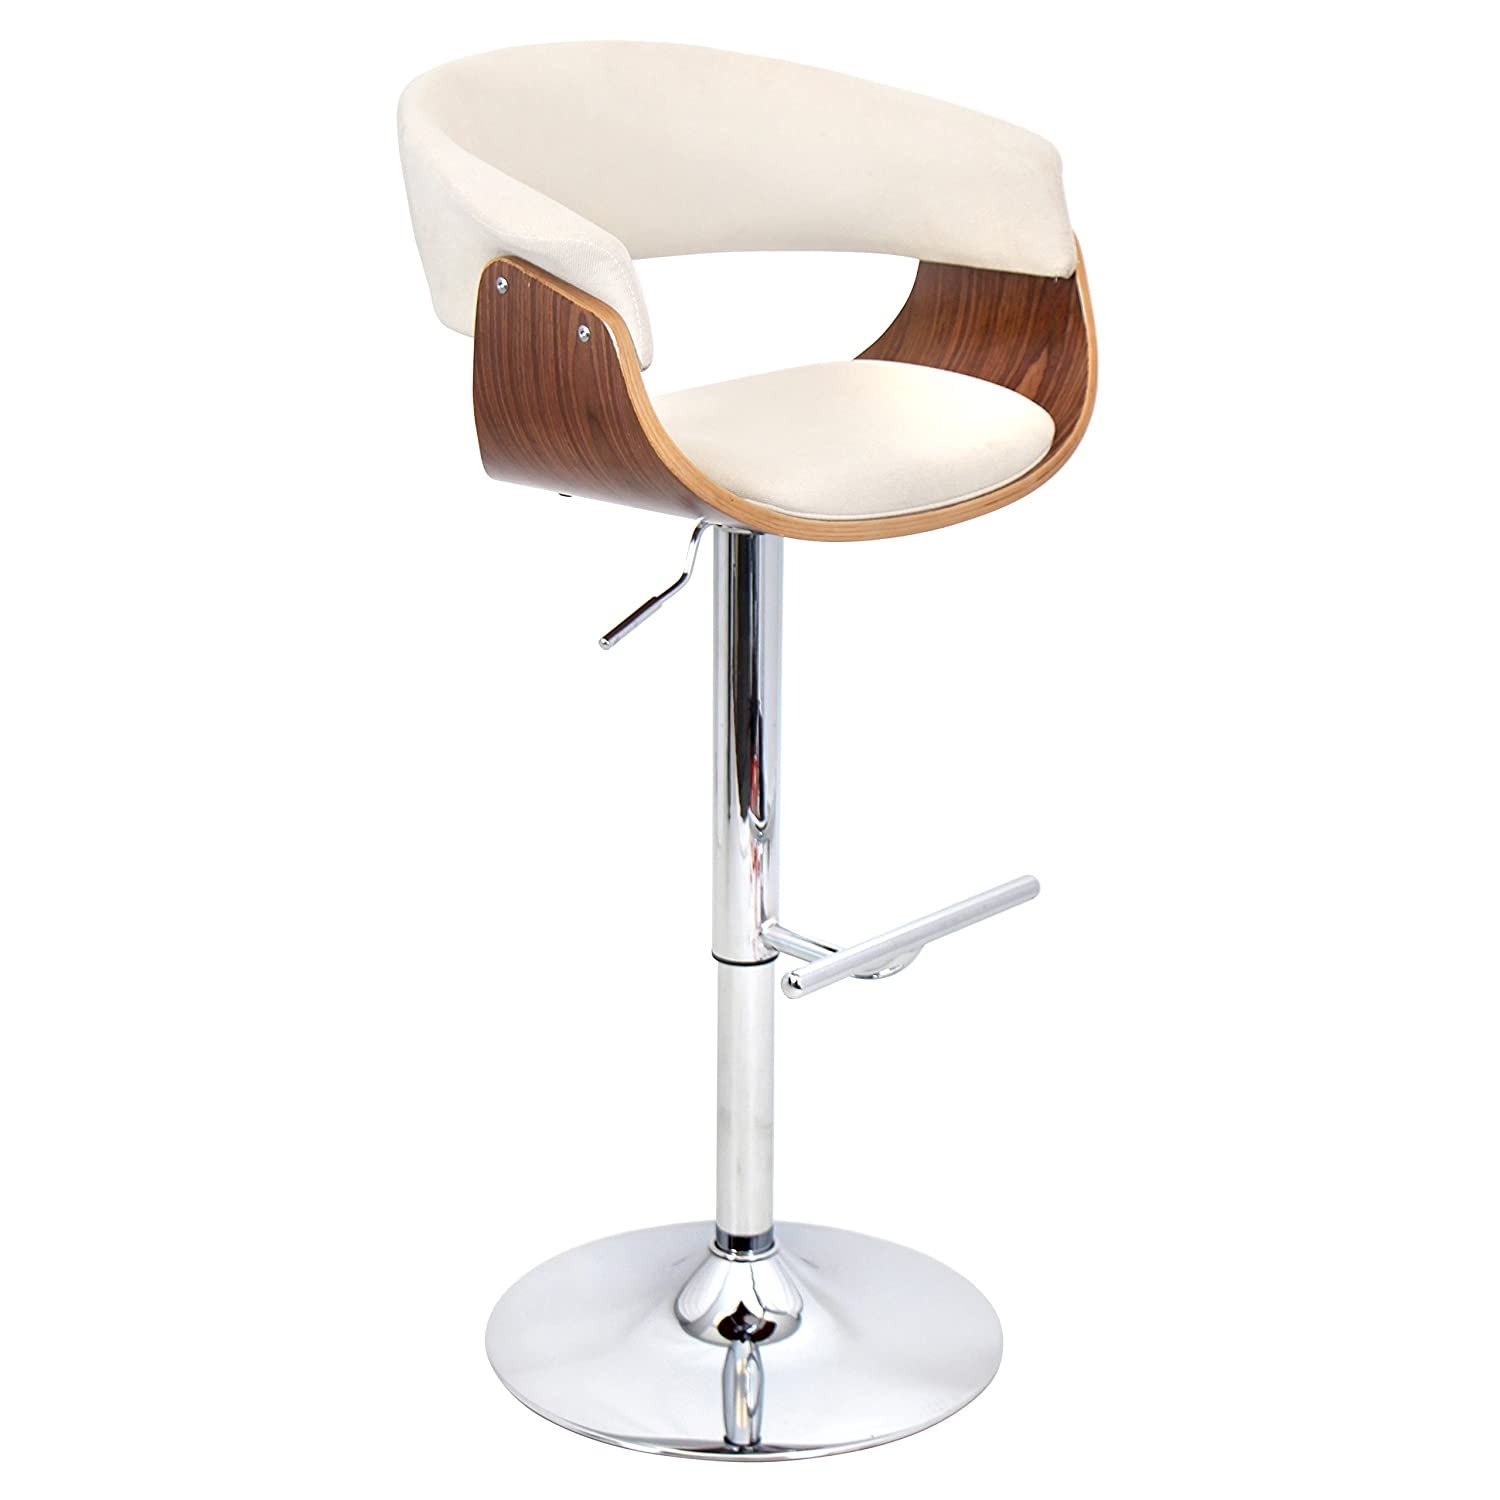 WOYBR Polyester Fabric, Bent Wood Vintage Mod Barstool, 42.75 x 23.25 x 17.5 , Walnut Cream